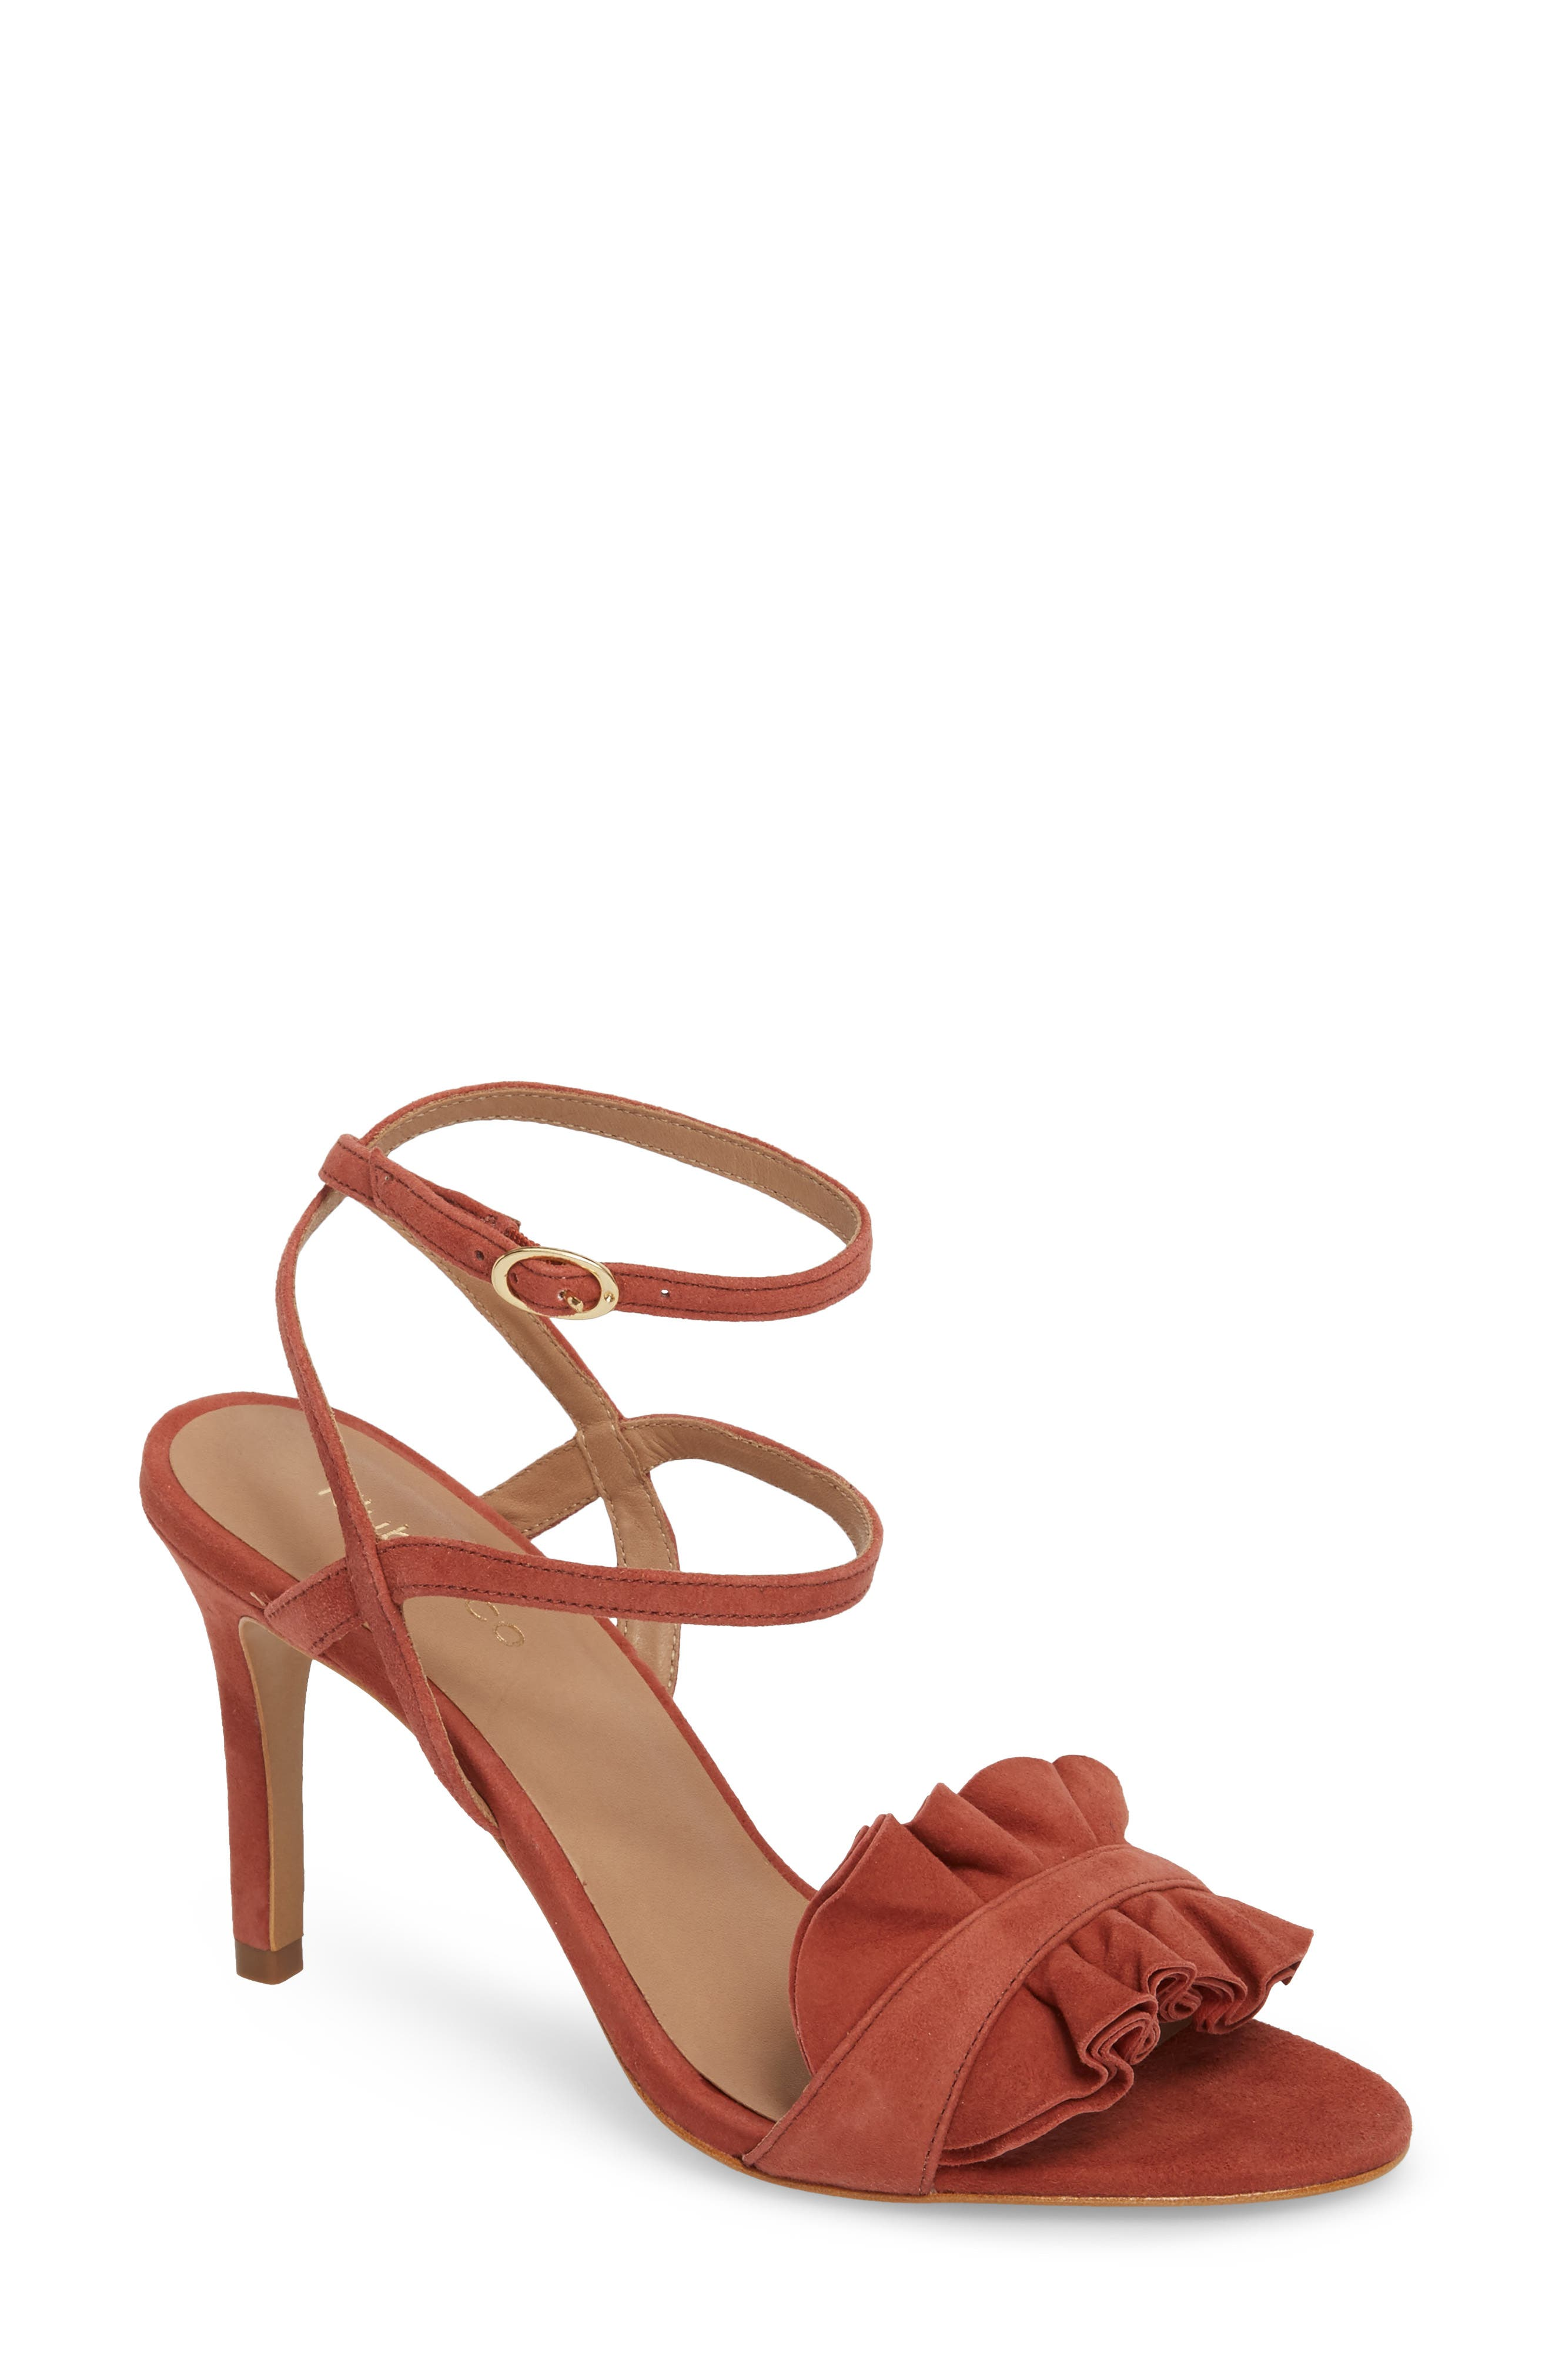 Ansley Sandal,                             Main thumbnail 1, color,                             Spice Suede